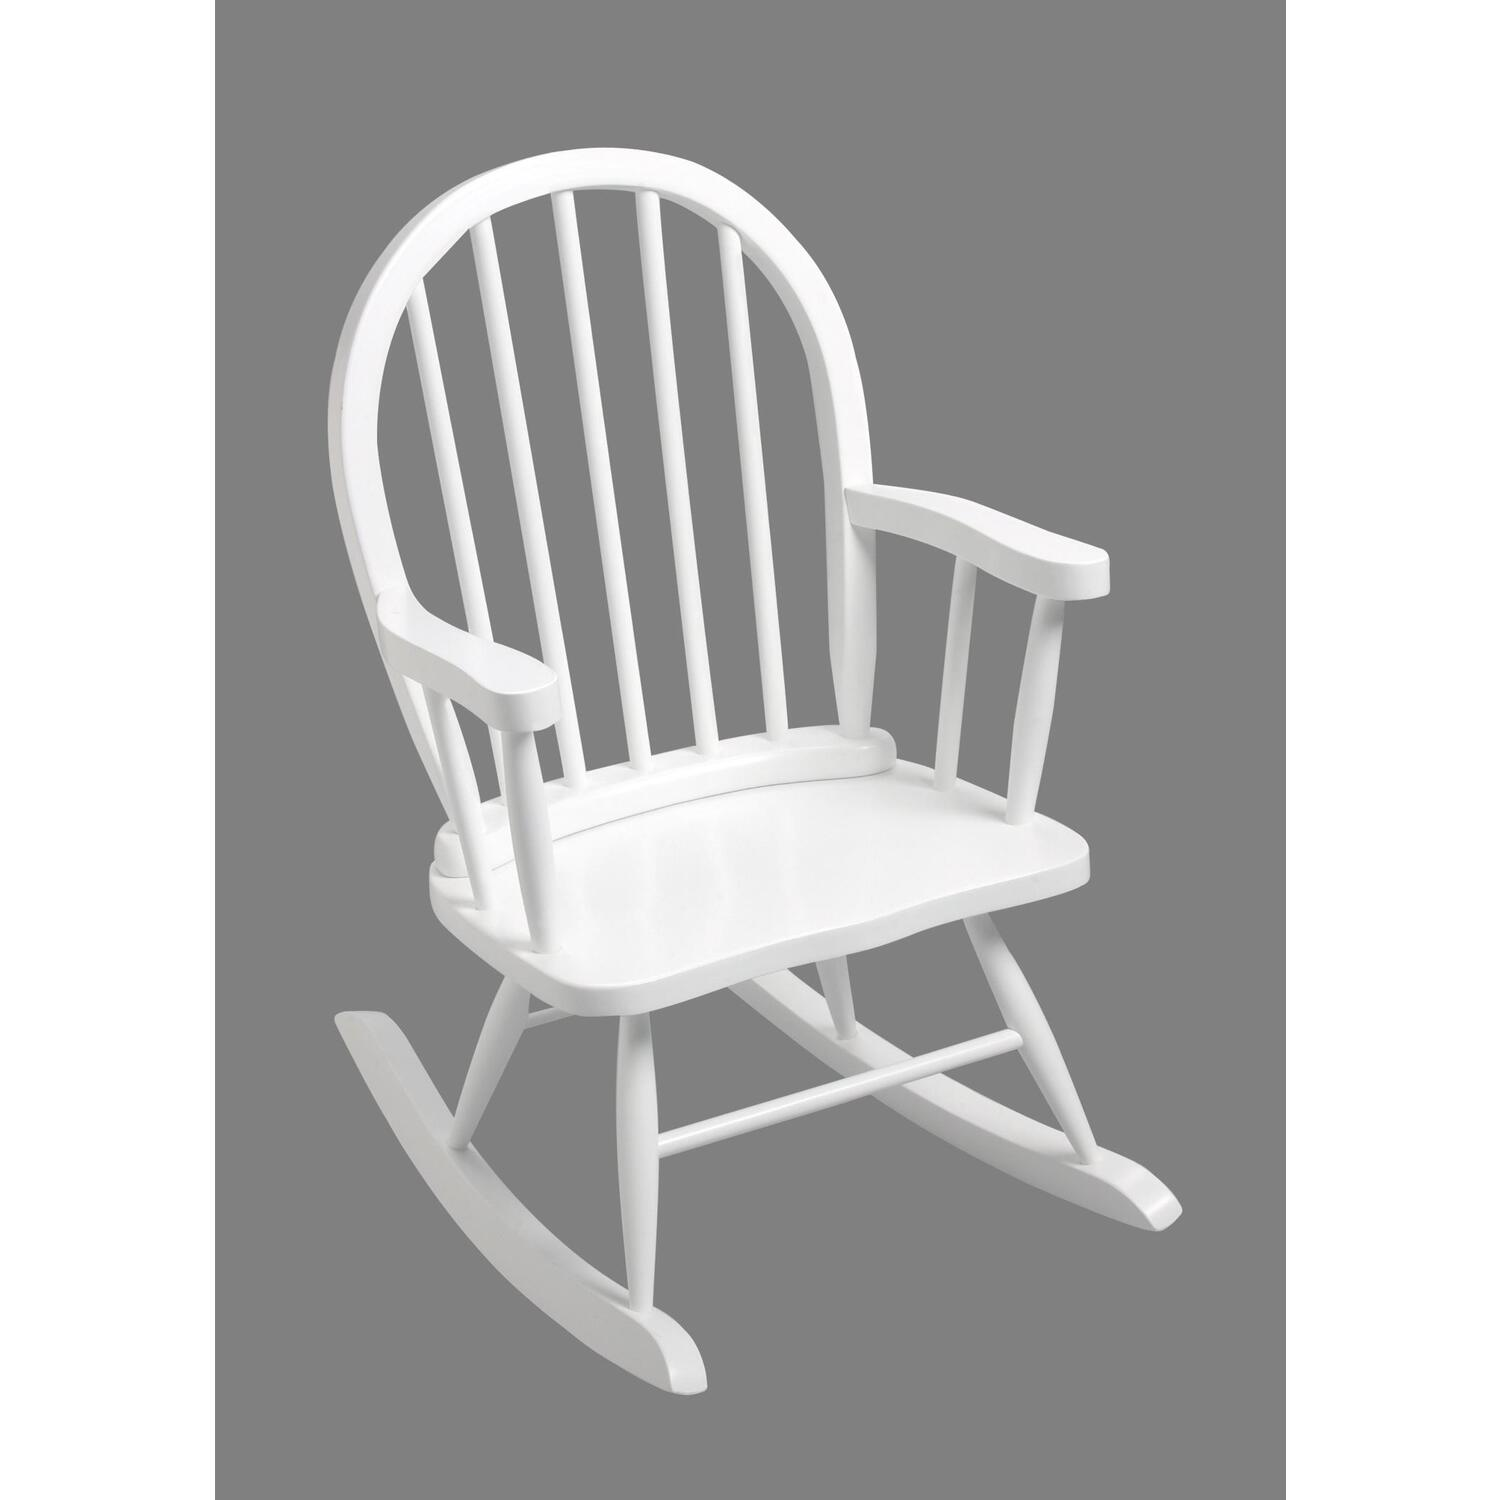 Childrens Rocking Chair Gift Mark 3600c Windsor Childrens Rocking Chair